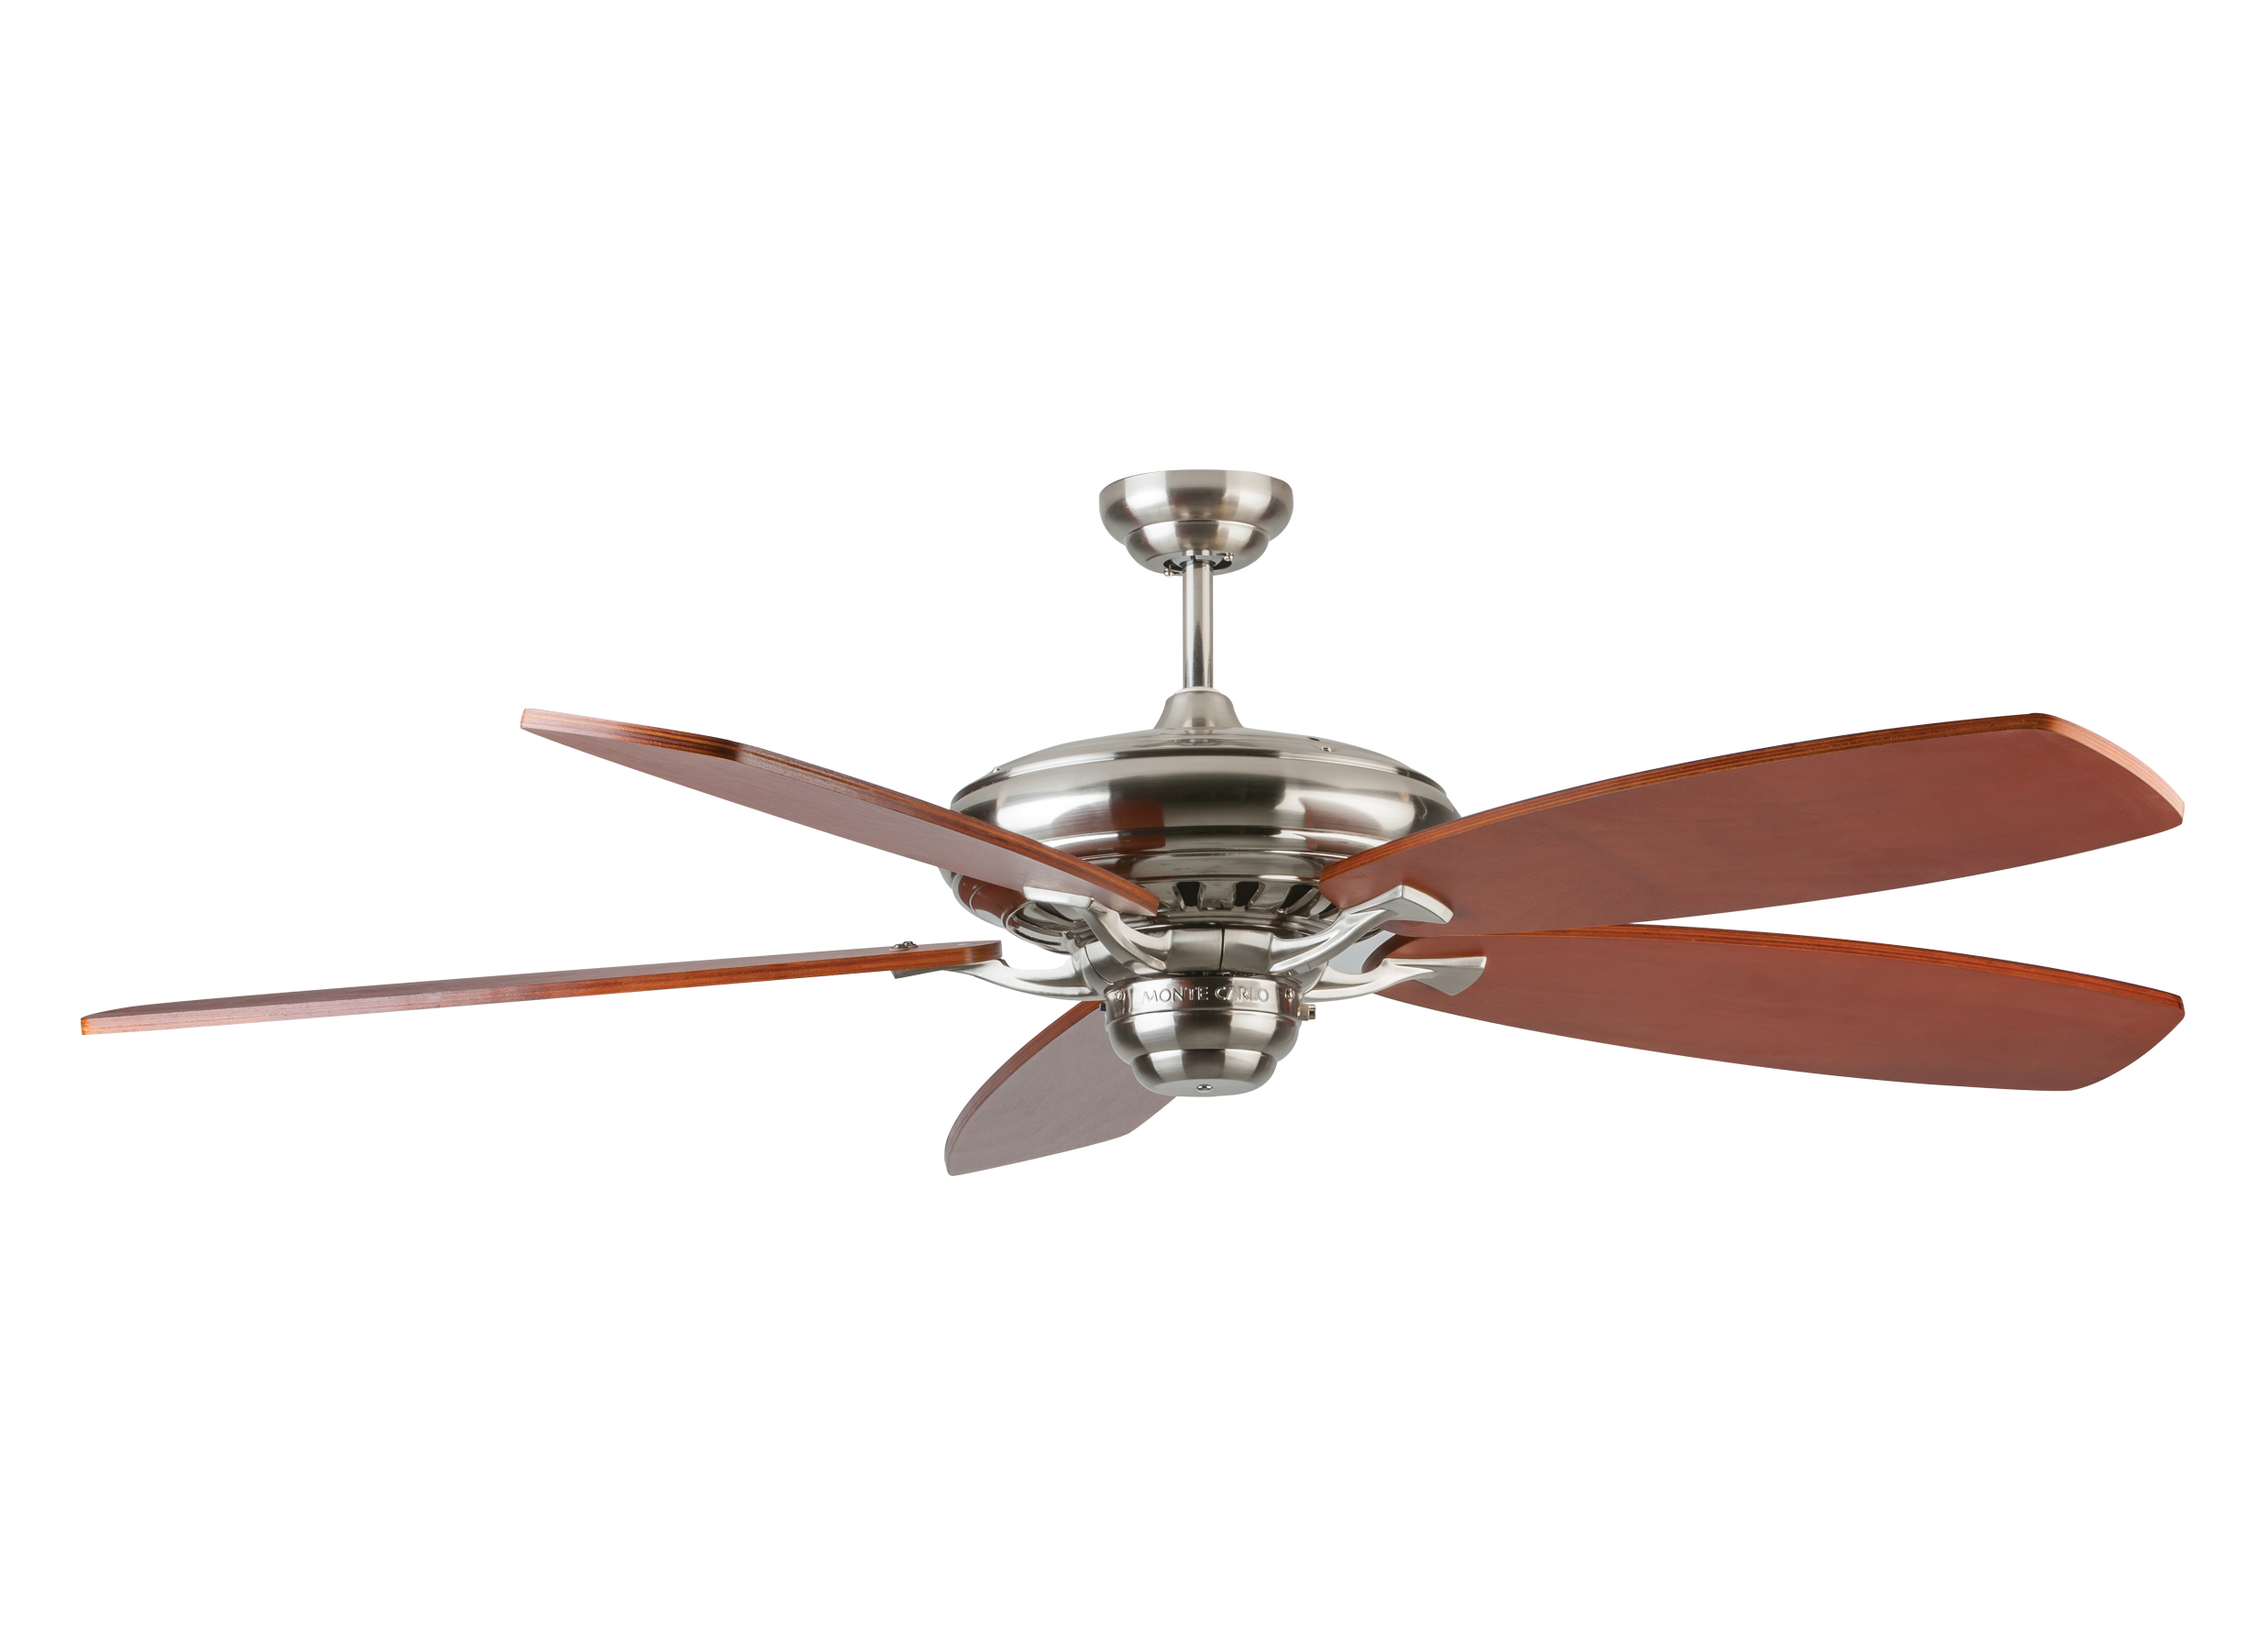 5MXBS Maxima Fan Blades Separate Brushed Steel Brushed Steel